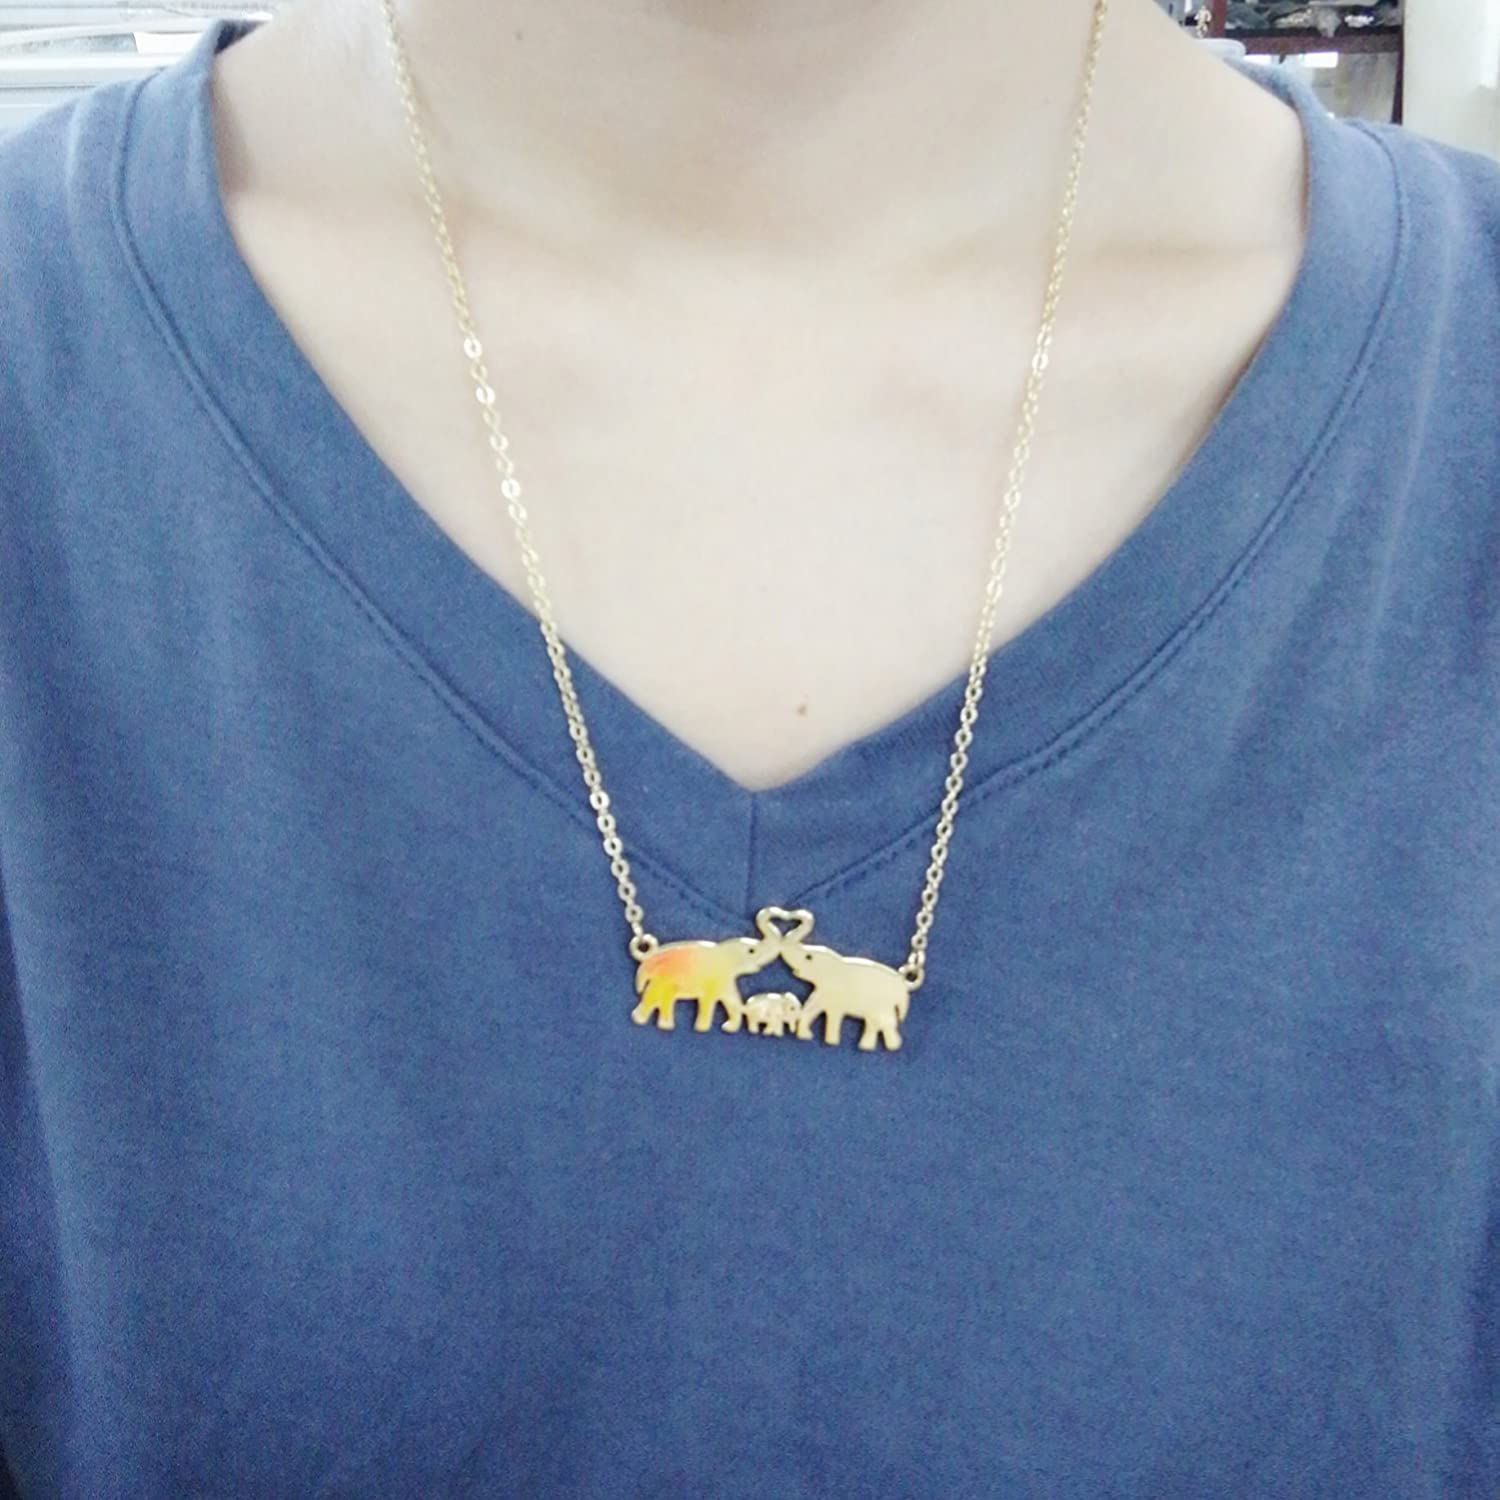 NOUMANDA Cute Elephant Family Necklace Elephant Mom Dad and Child Love Forever Pendant Gifts